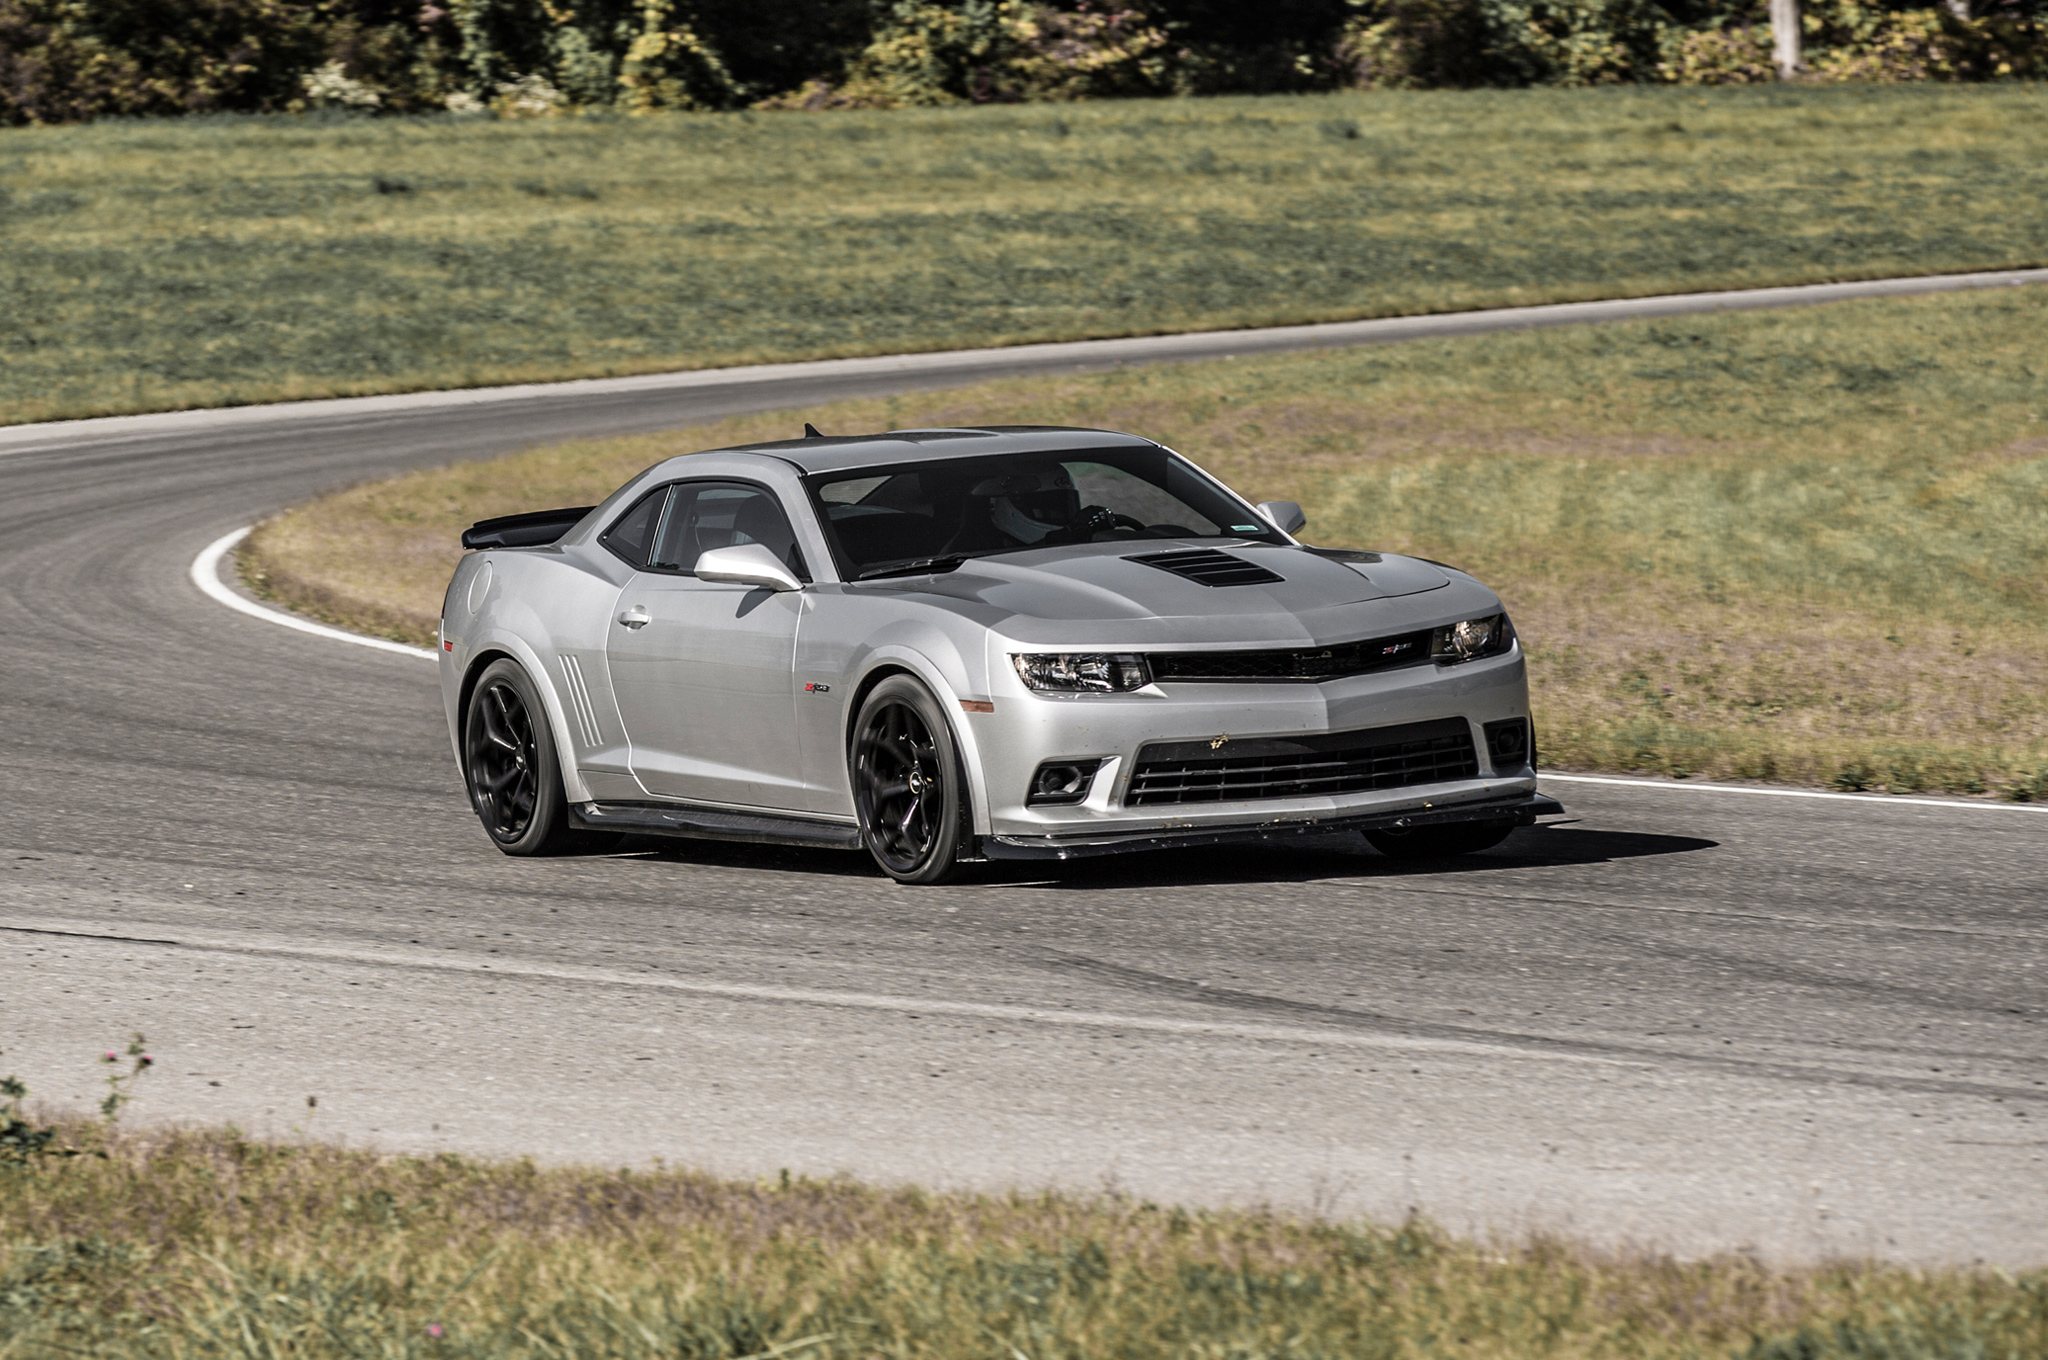 2014 chevrolet camaro z28 at nurburgring right front